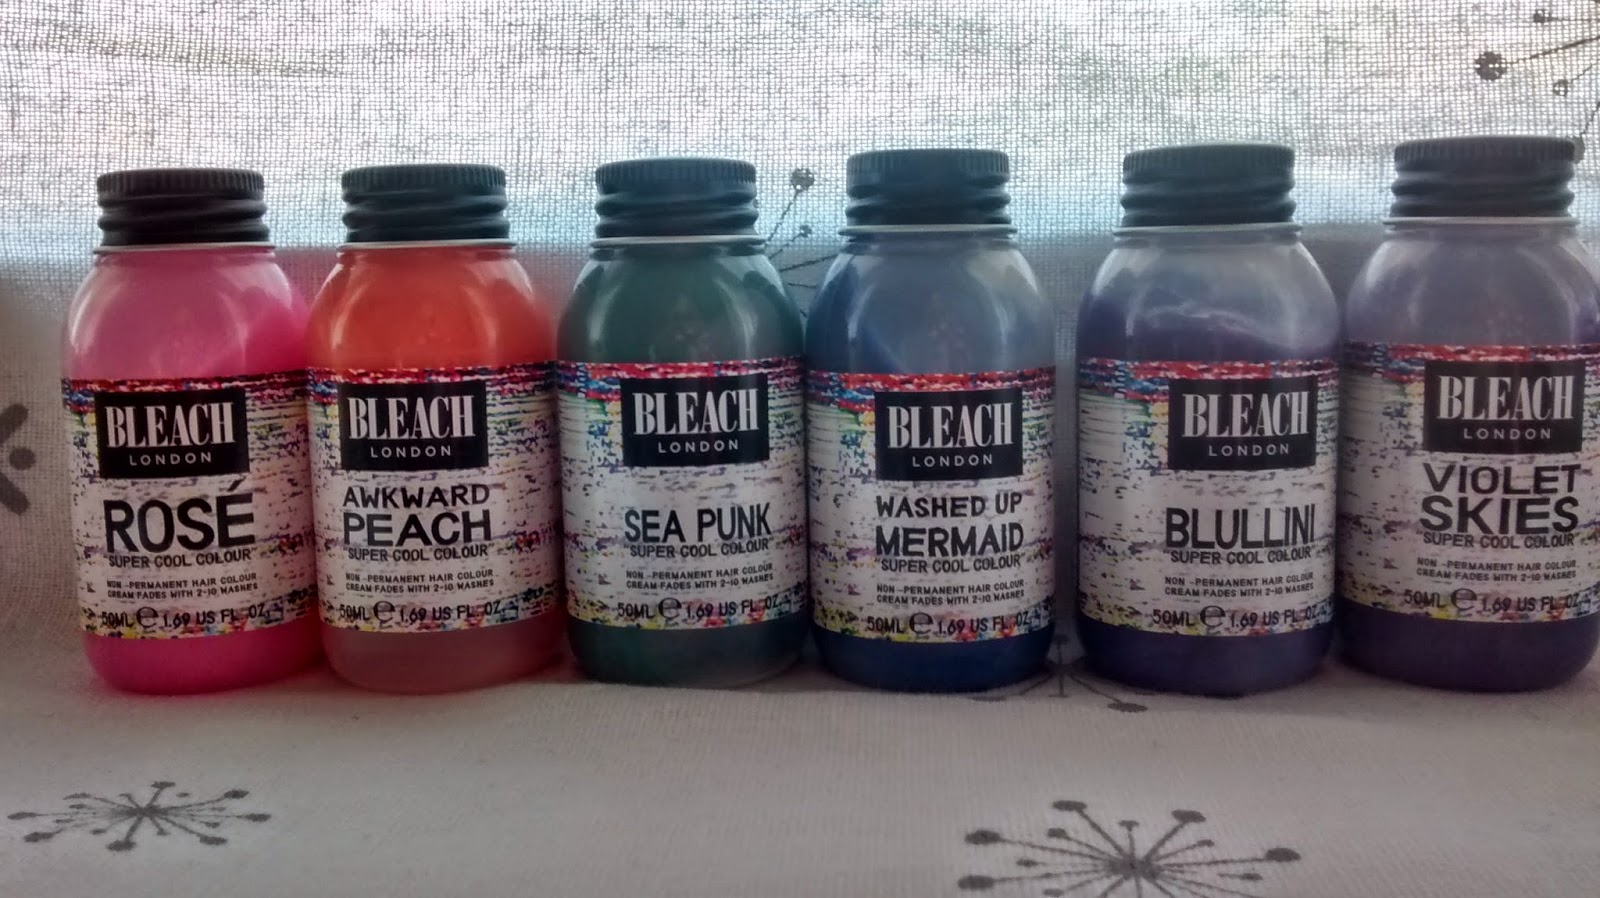 BLEACH London Hair Dye